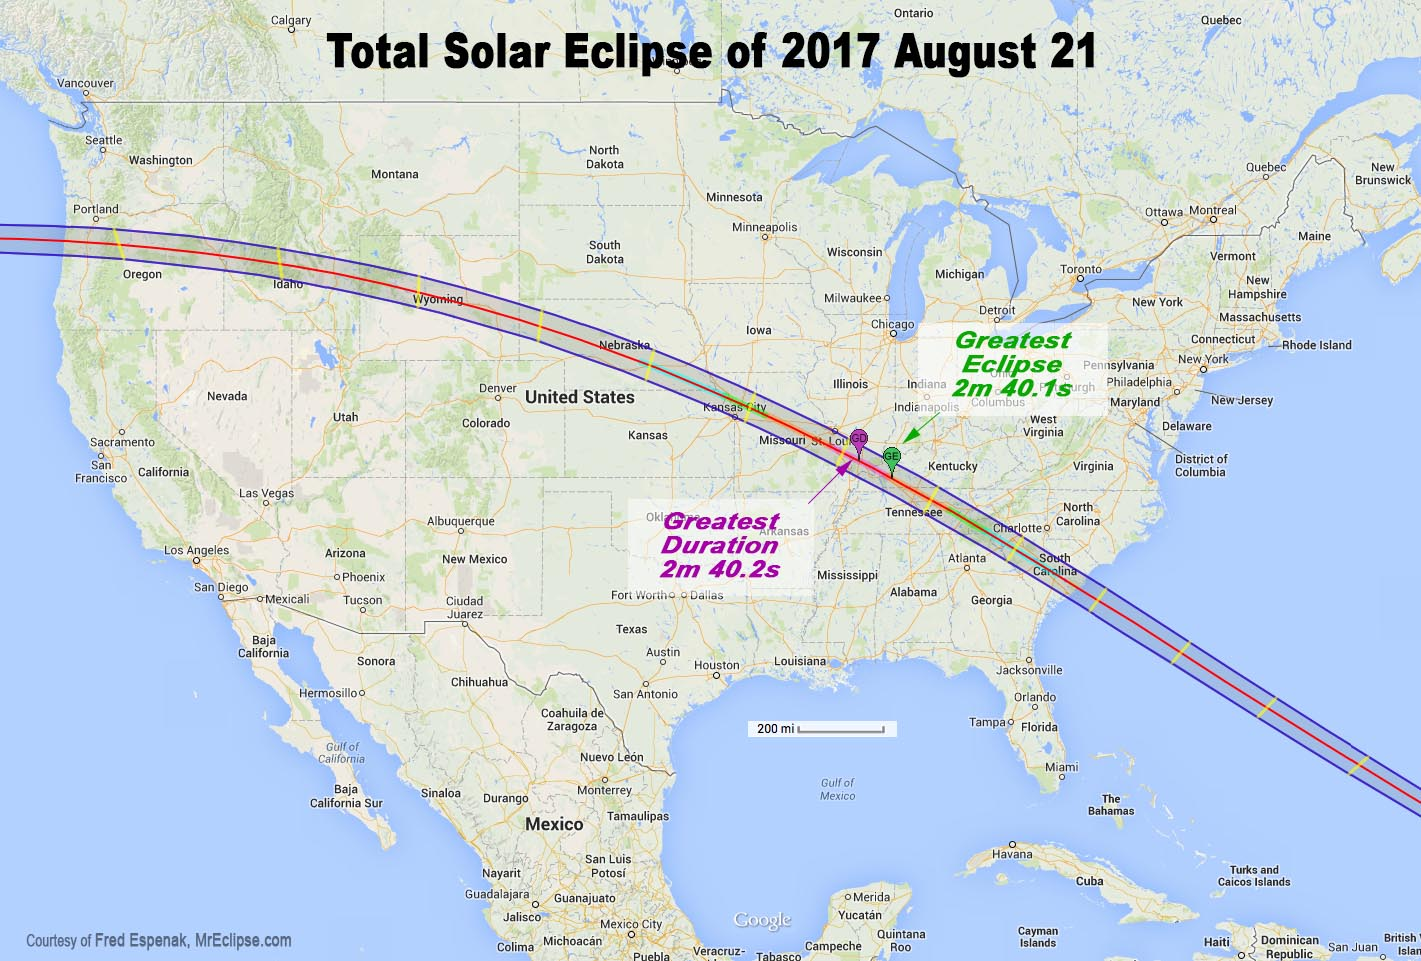 APOD: 2016 August 21   Map of Total Solar Eclipse Path in 2017 August